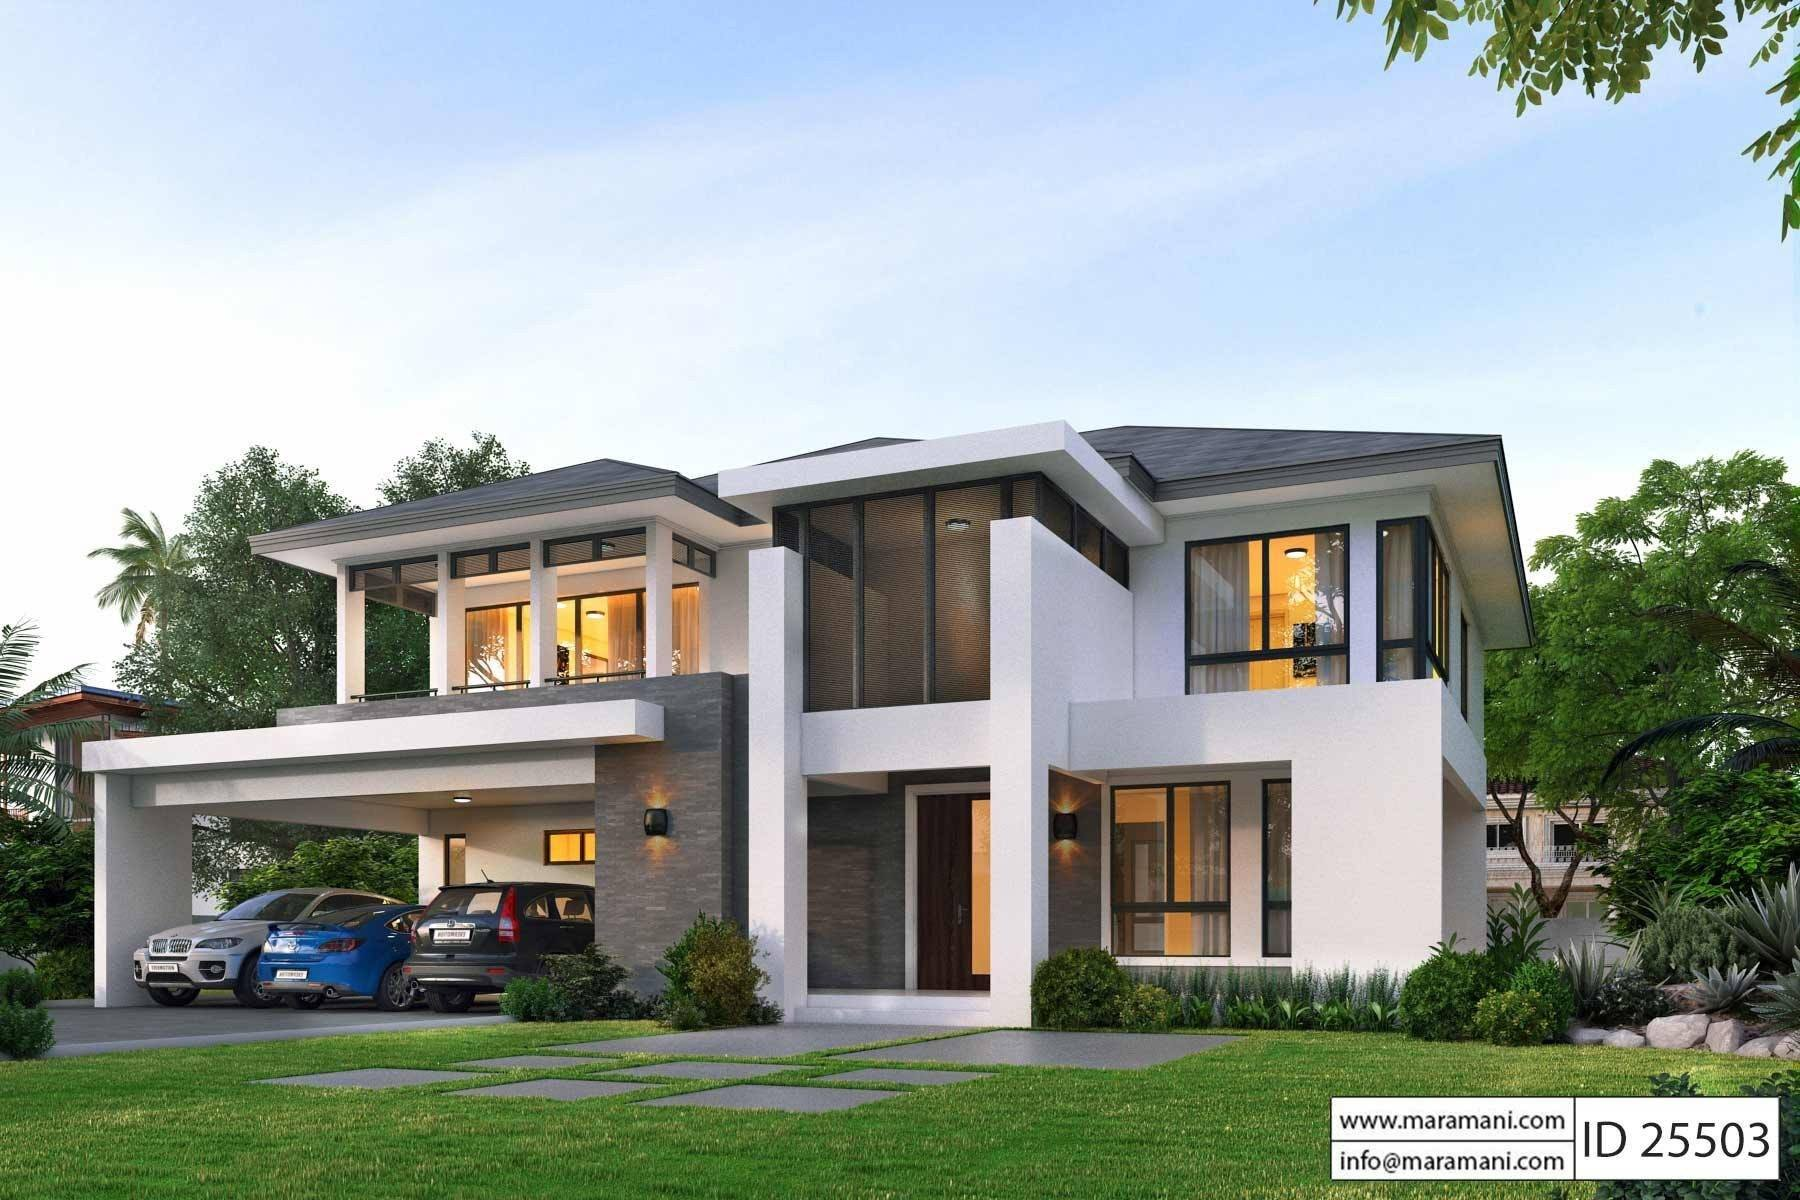 5 Bedroom House Plans Designs For Africa Maramani Com